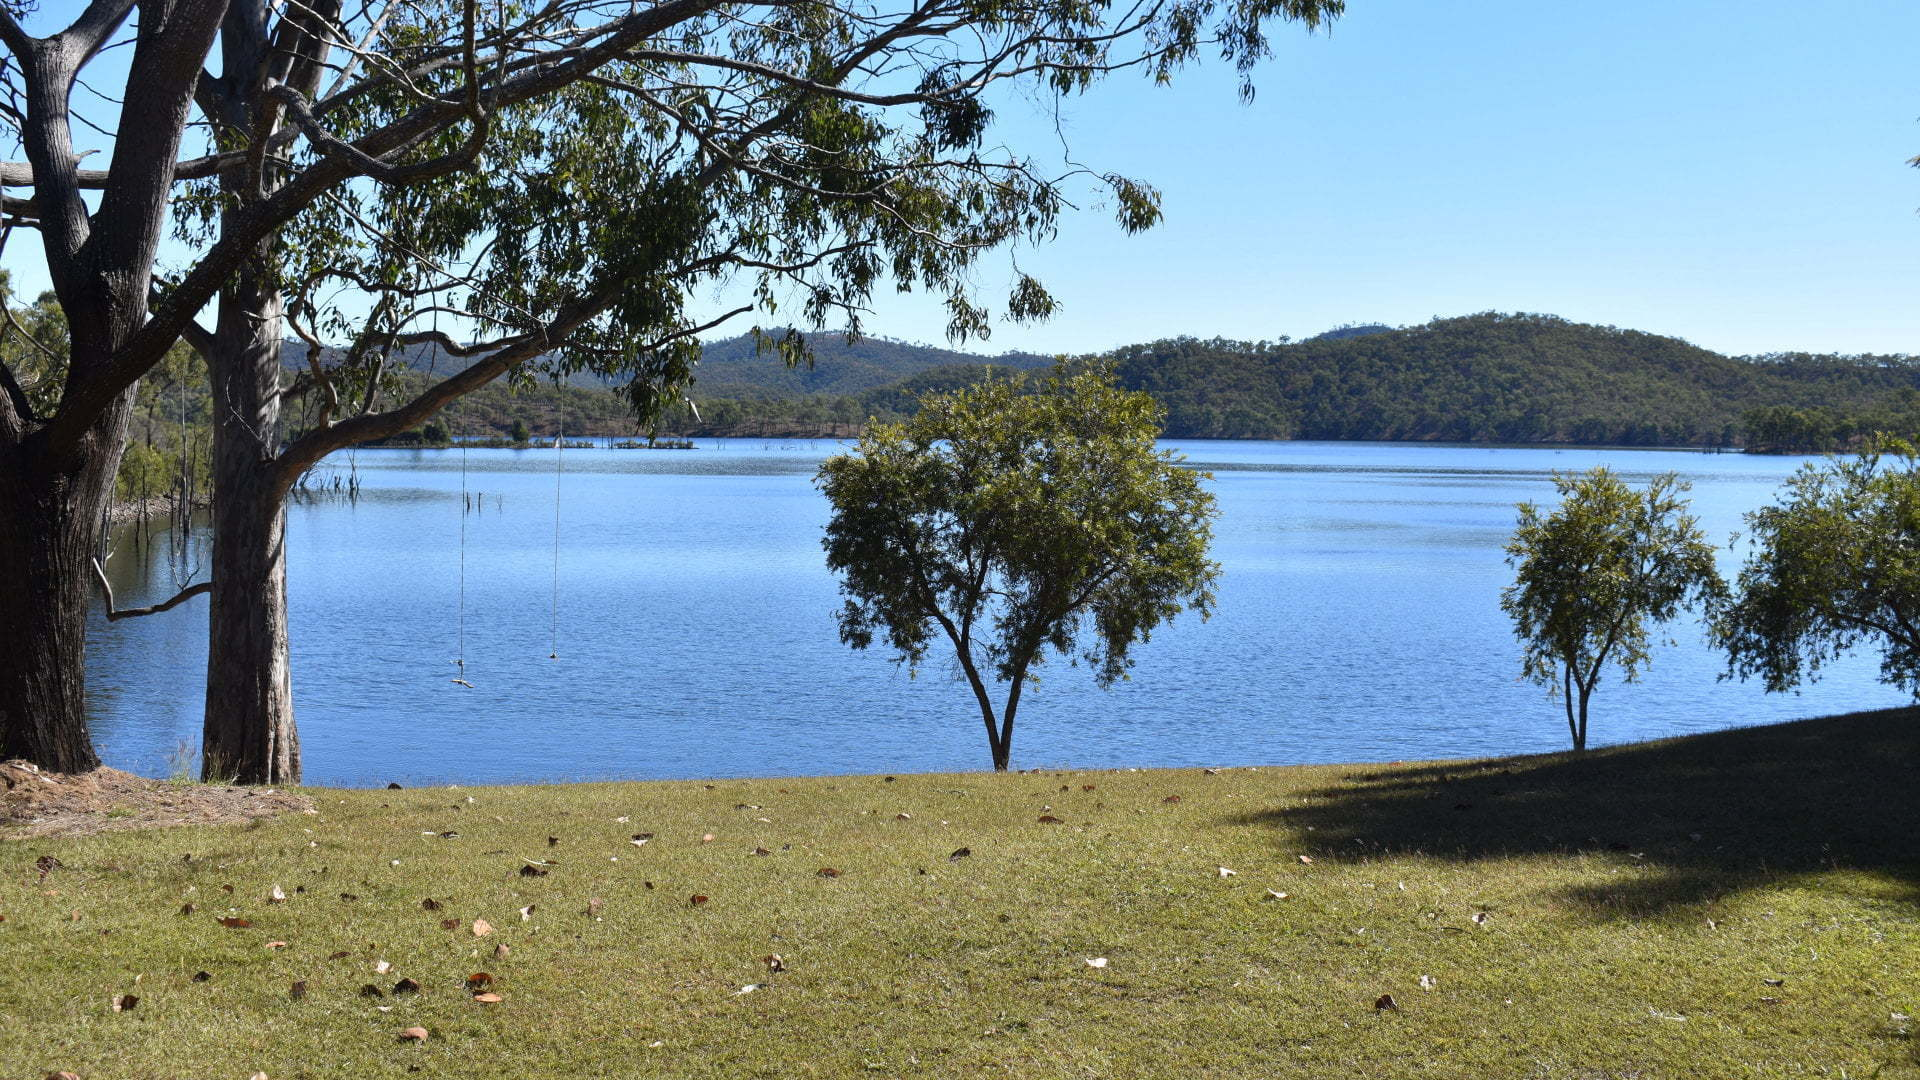 View of the Lake at Cania Dam, located north of Monto the lake is stocked with fish for recreational fishing